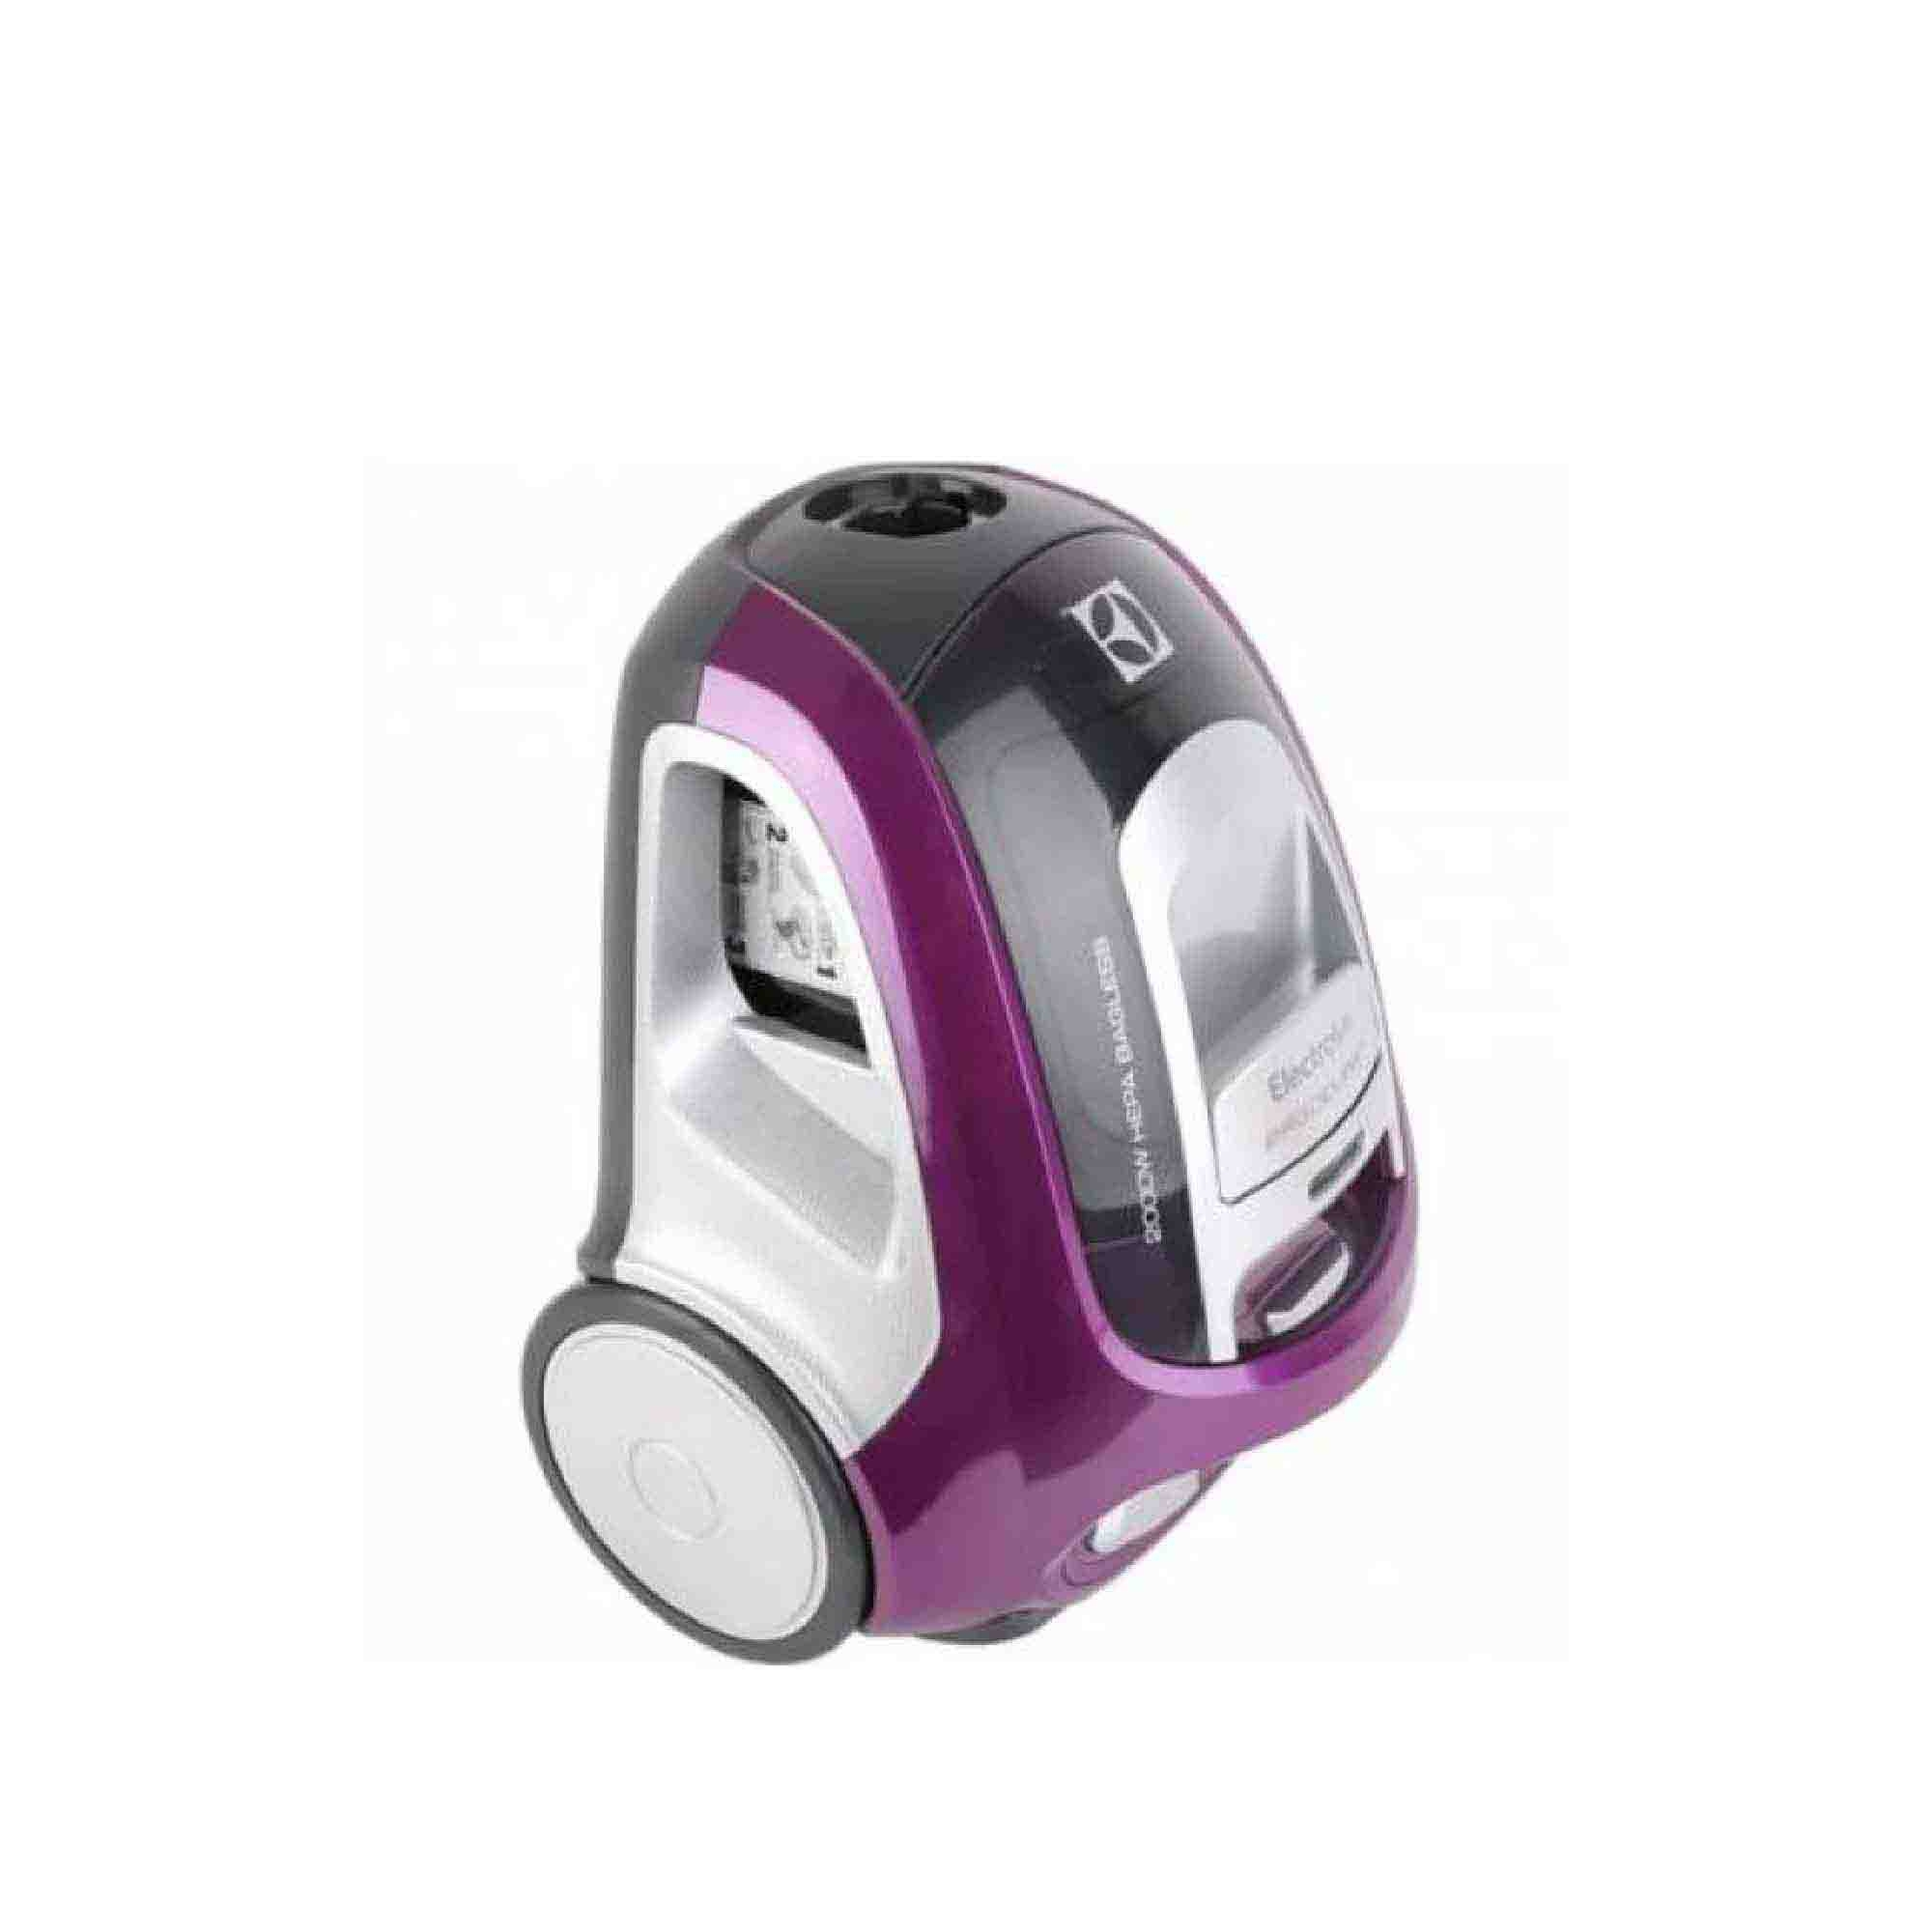 electrolux bagless vacuum cleaner. product description electrolux bagless canister vacuum cleaners cleaner